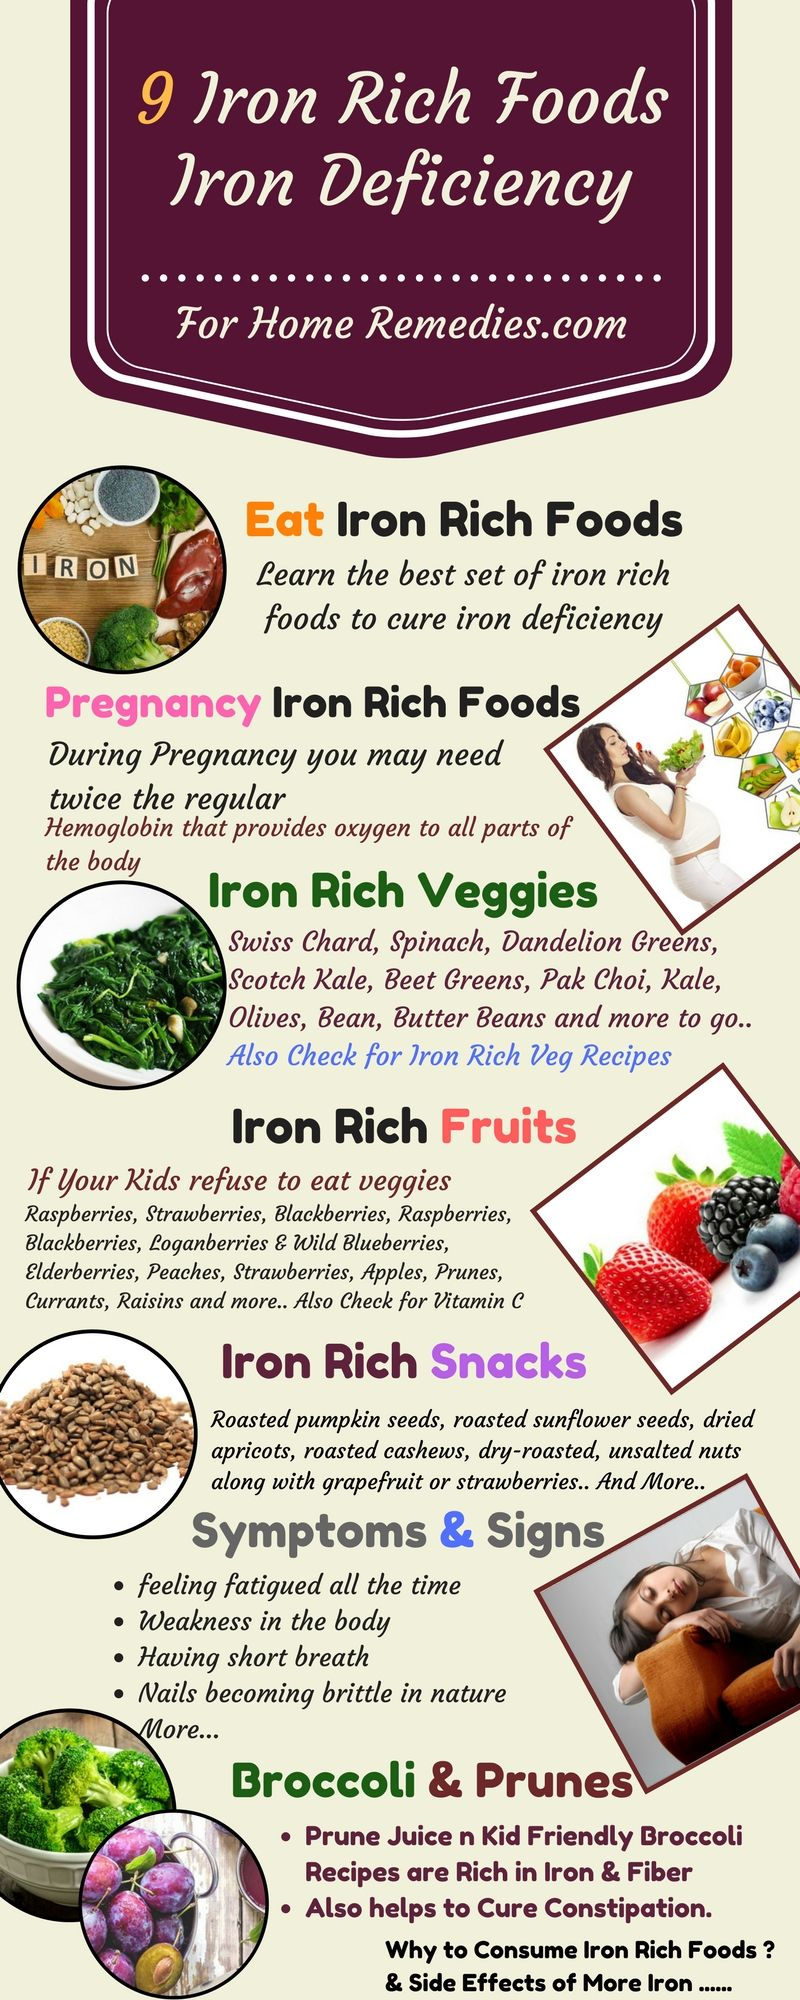 My Iron Deficiency 9 Home Remedies & Best Iron Rich